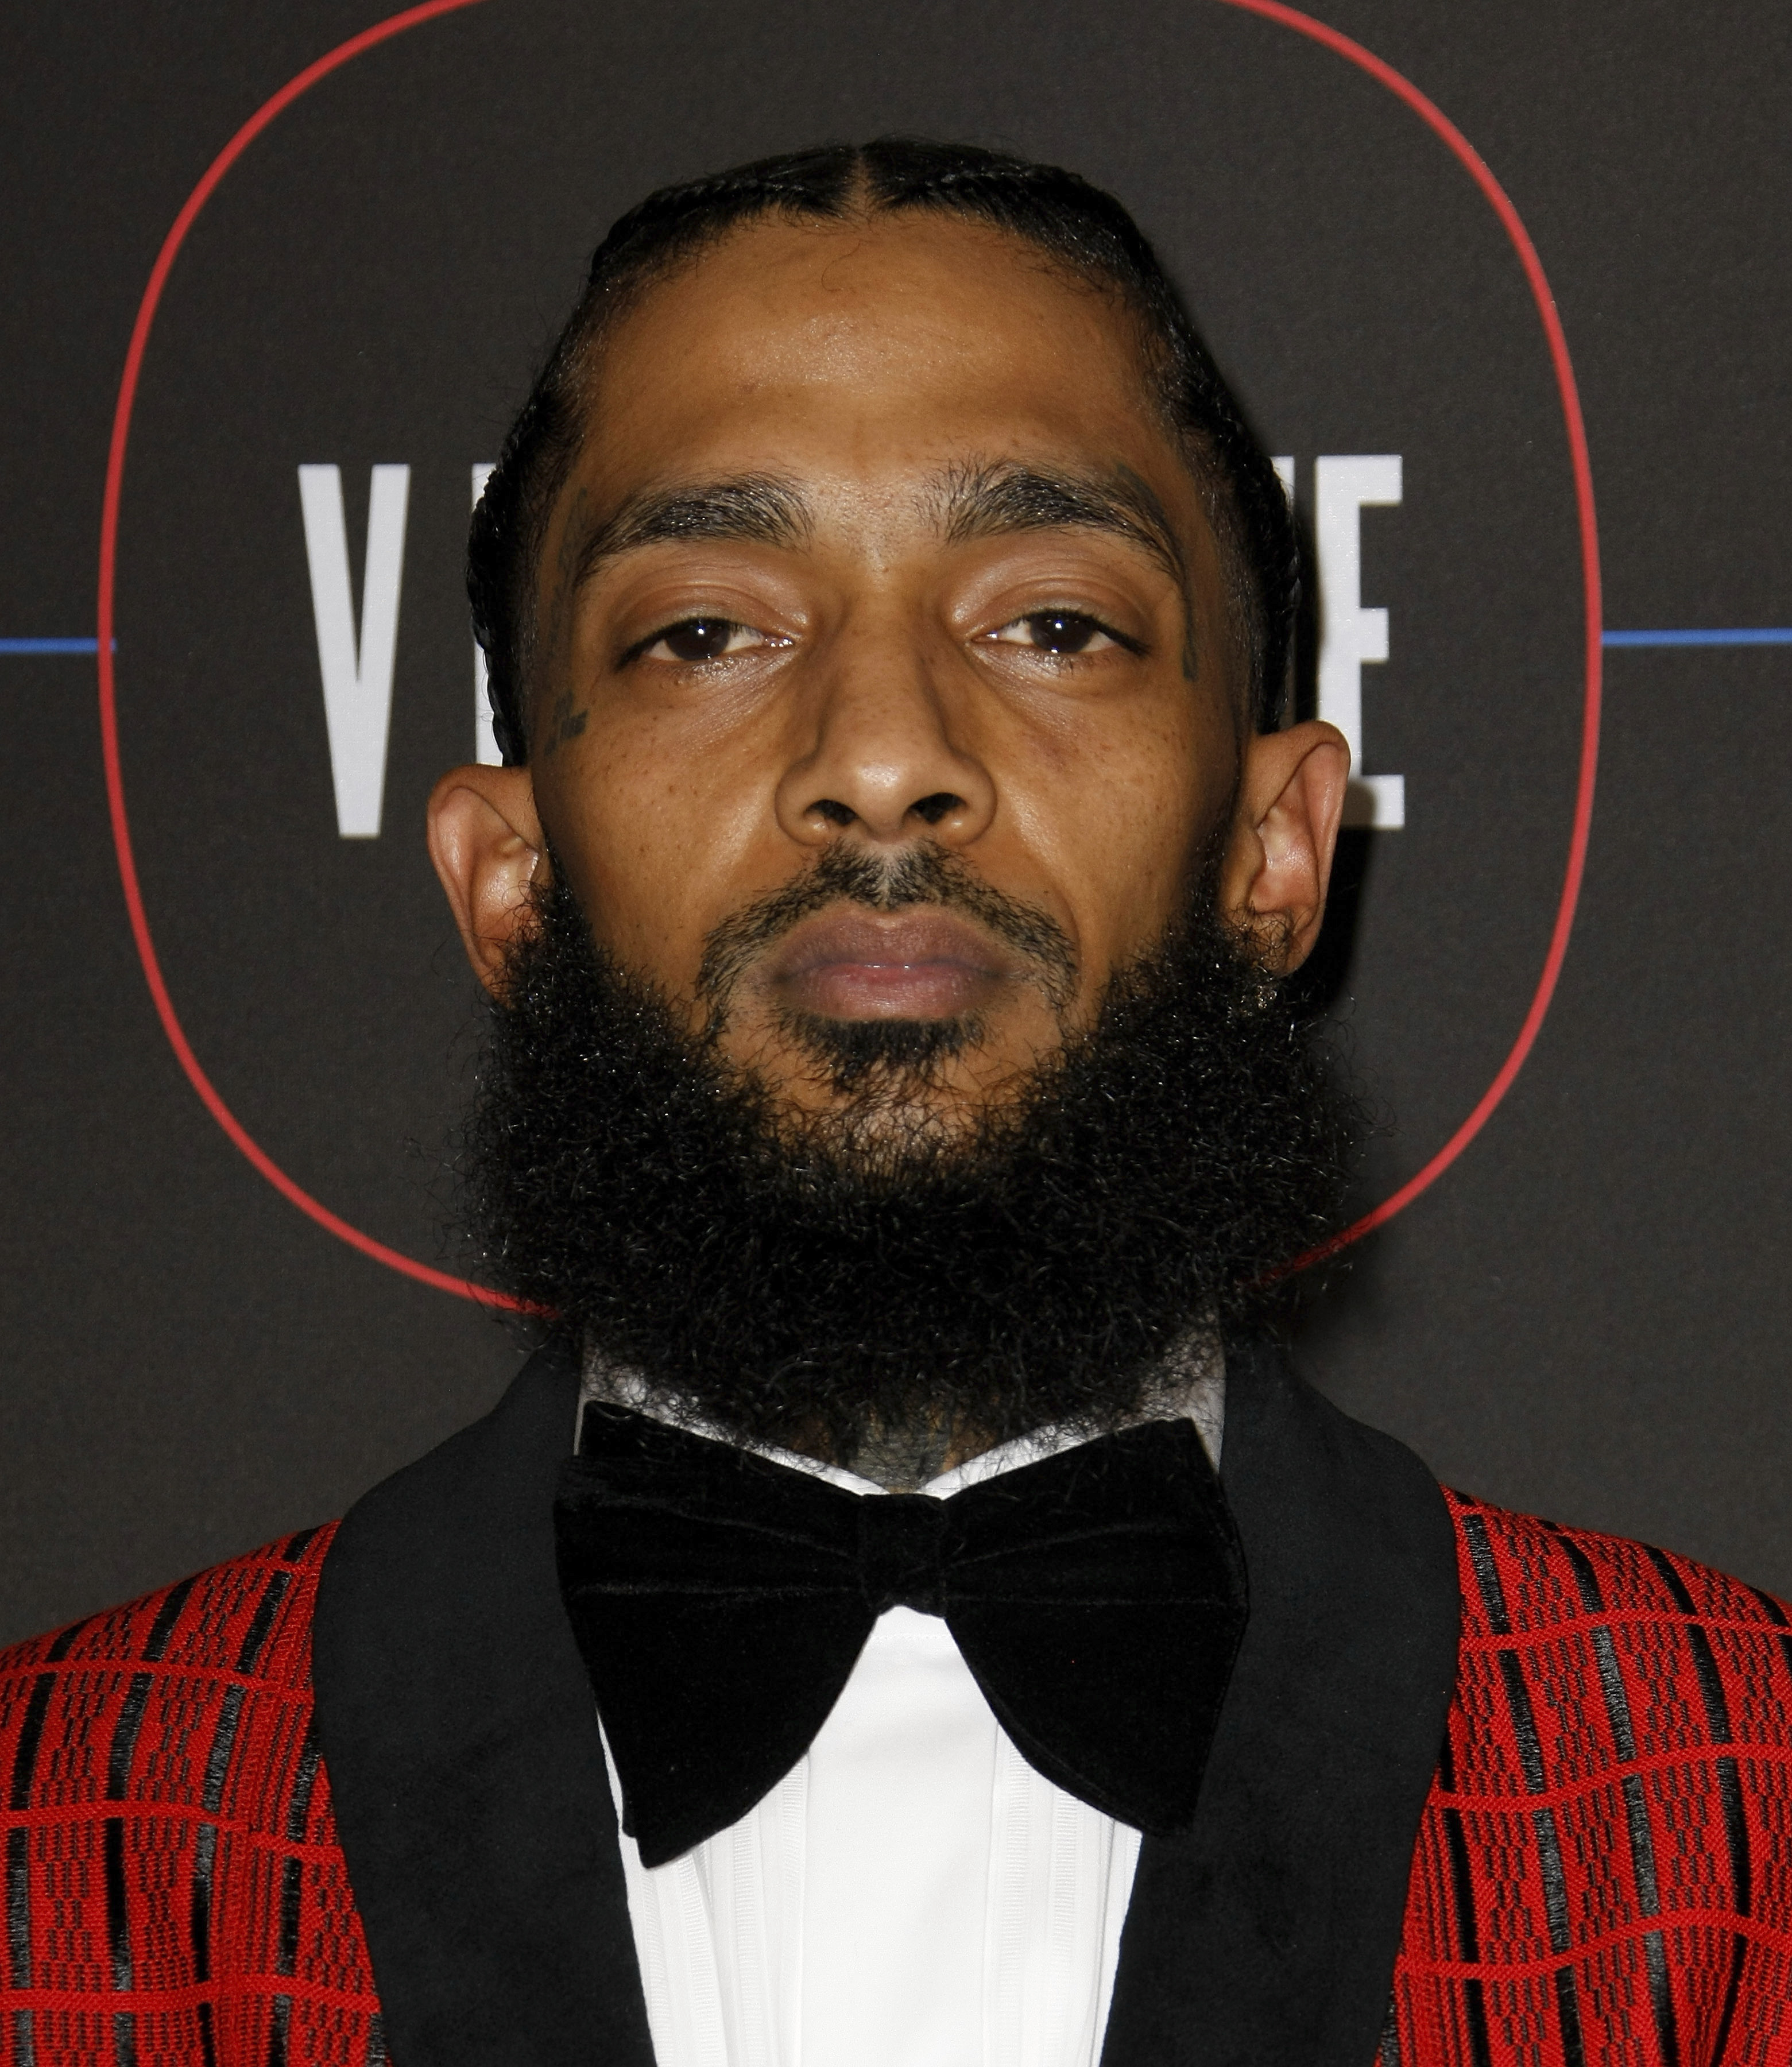 Antigo Shooting Gunman Dies After Opening Fire Outside Of: Rapper Nipsey Hussle Dead After Shooting Outside His Store